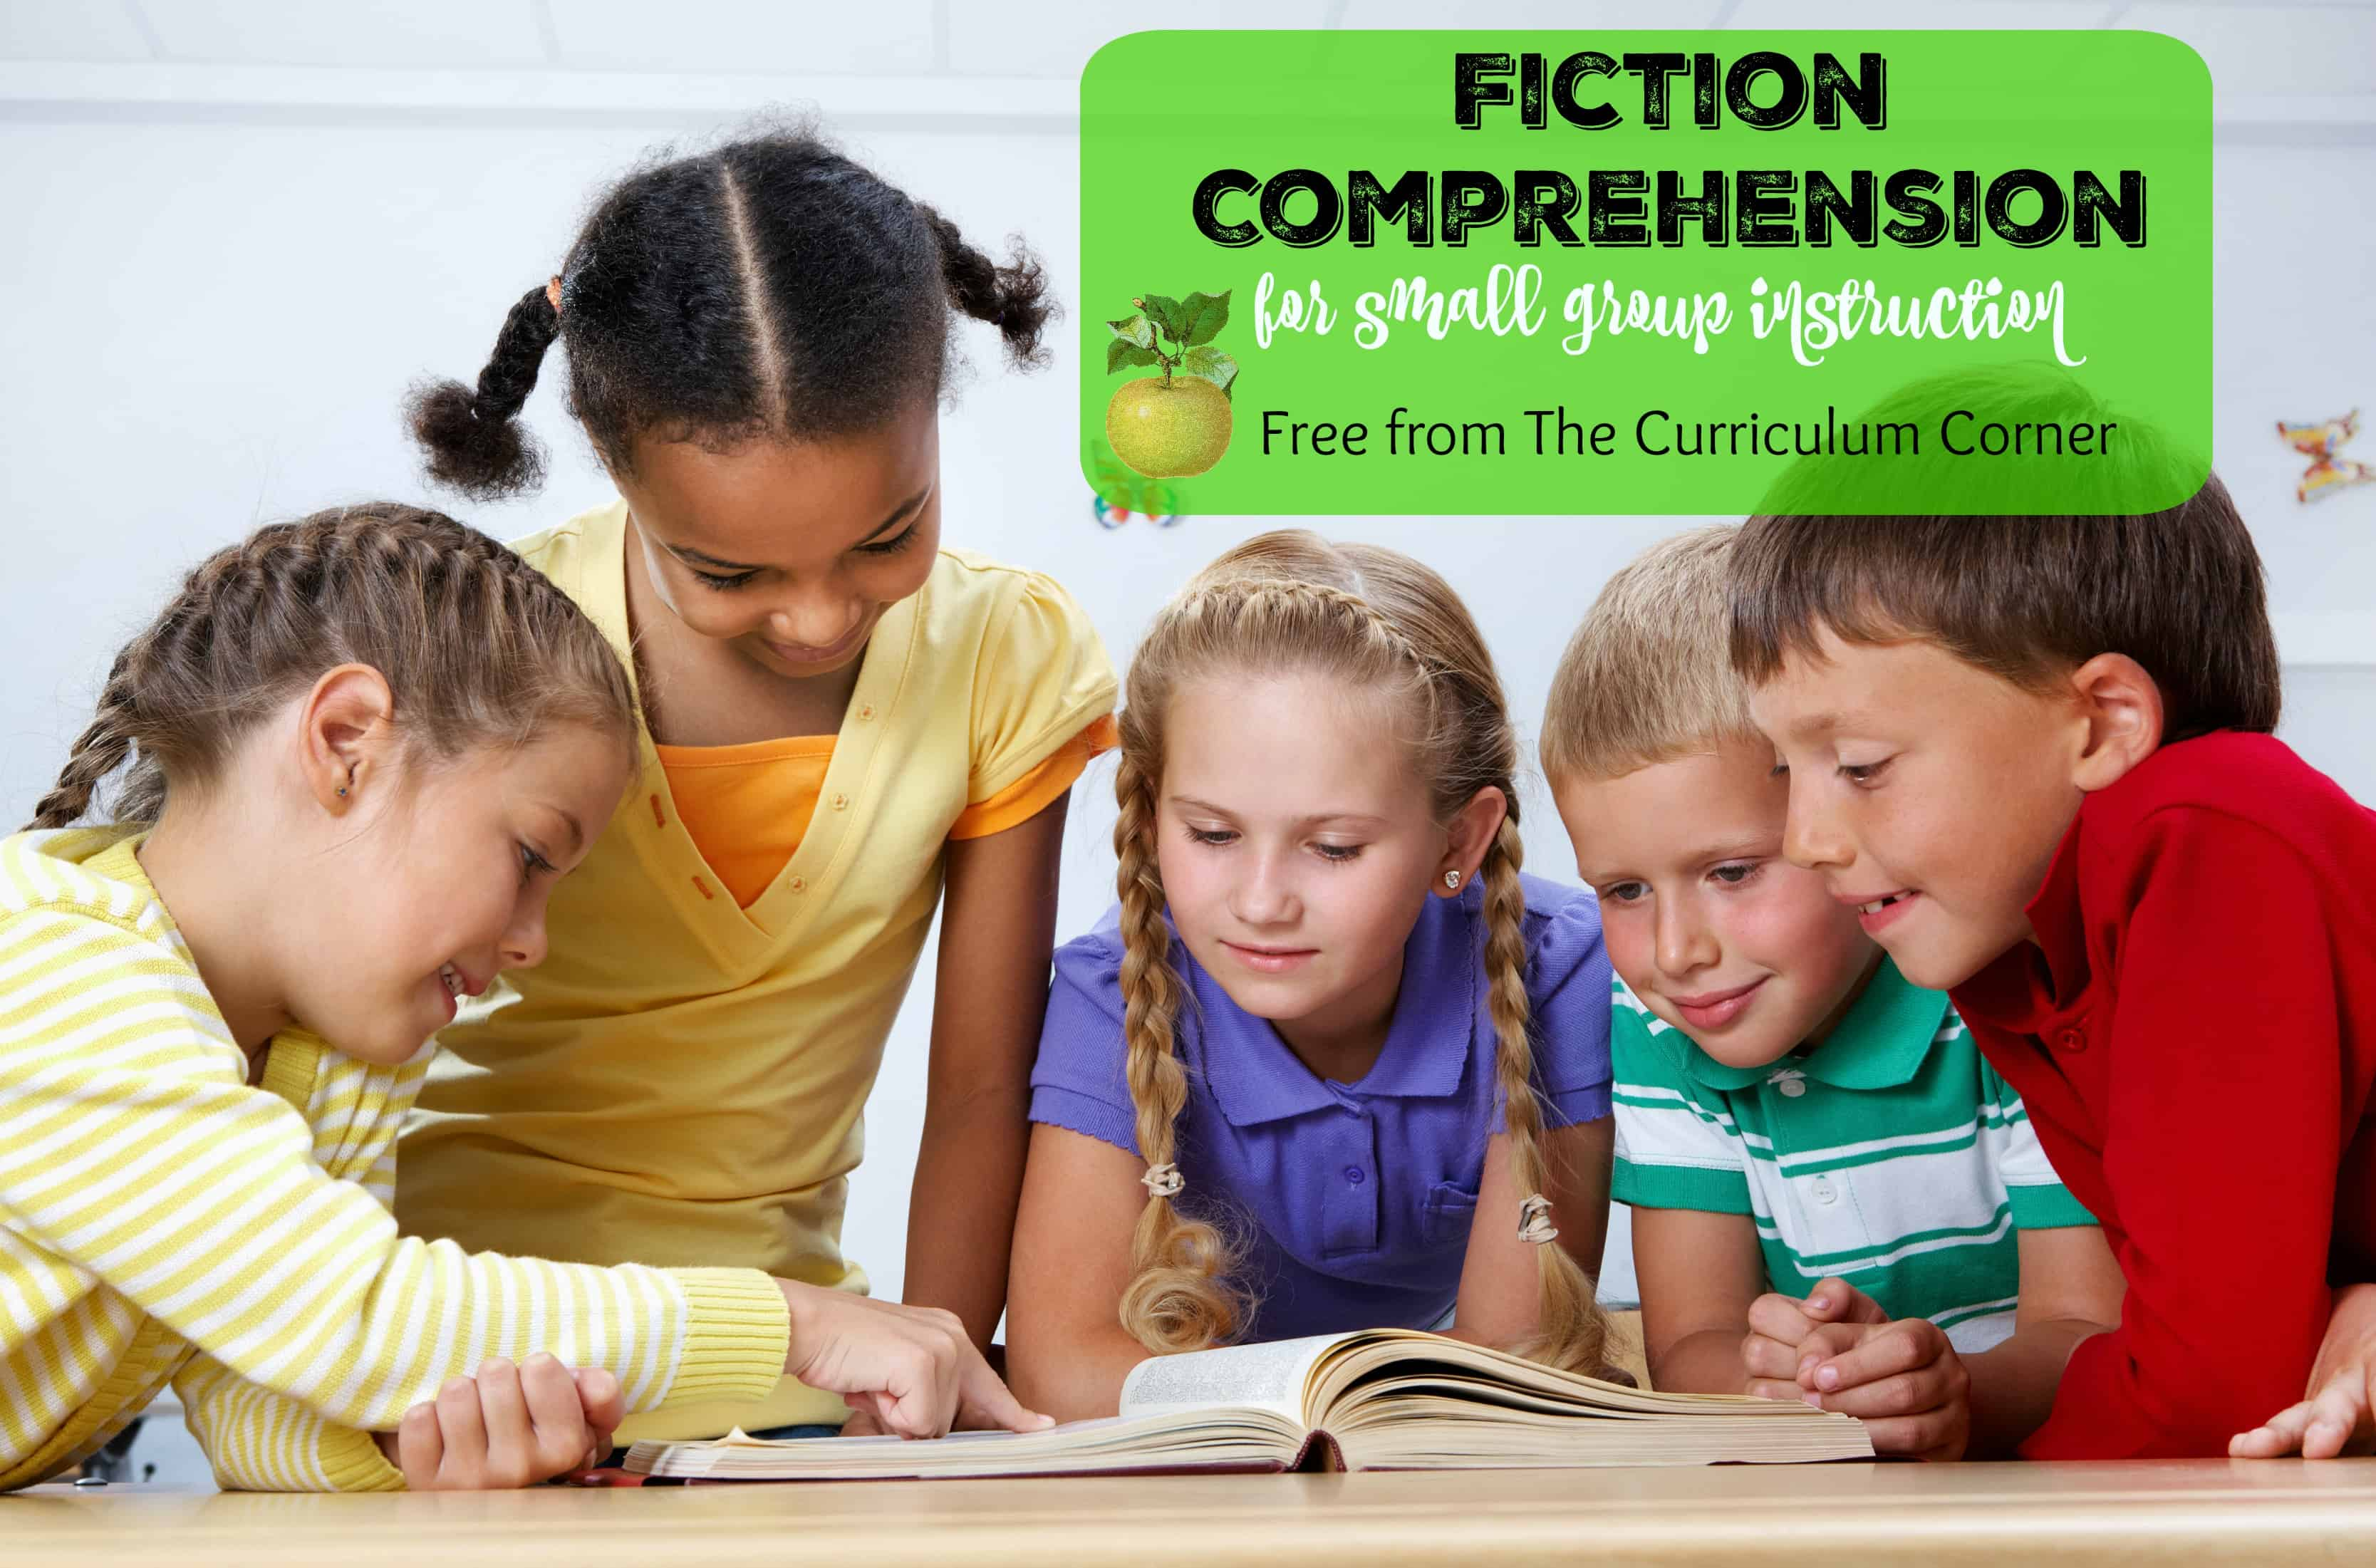 Fiction Comprehension for Small Groups